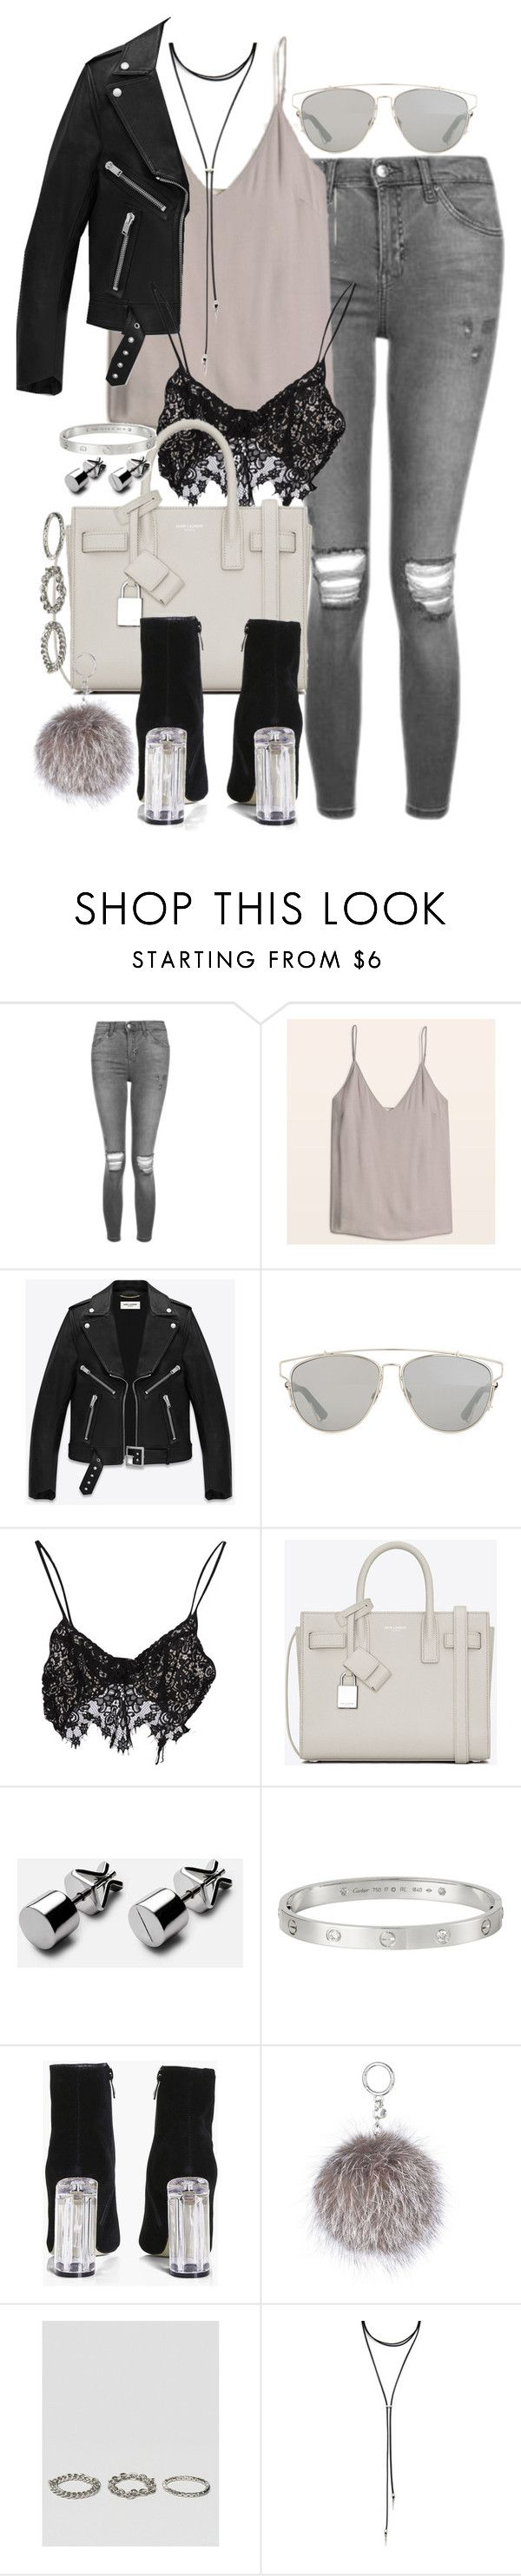 """""""Untitled #142"""" by marinas-clothes ❤ liked on Polyvore featuring Topshop, Yves Saint Laurent, Christian Dior, For Love & Lemons, Cartier, Boohoo, MICHAEL Michael Kors, ASOS and Forever 21"""